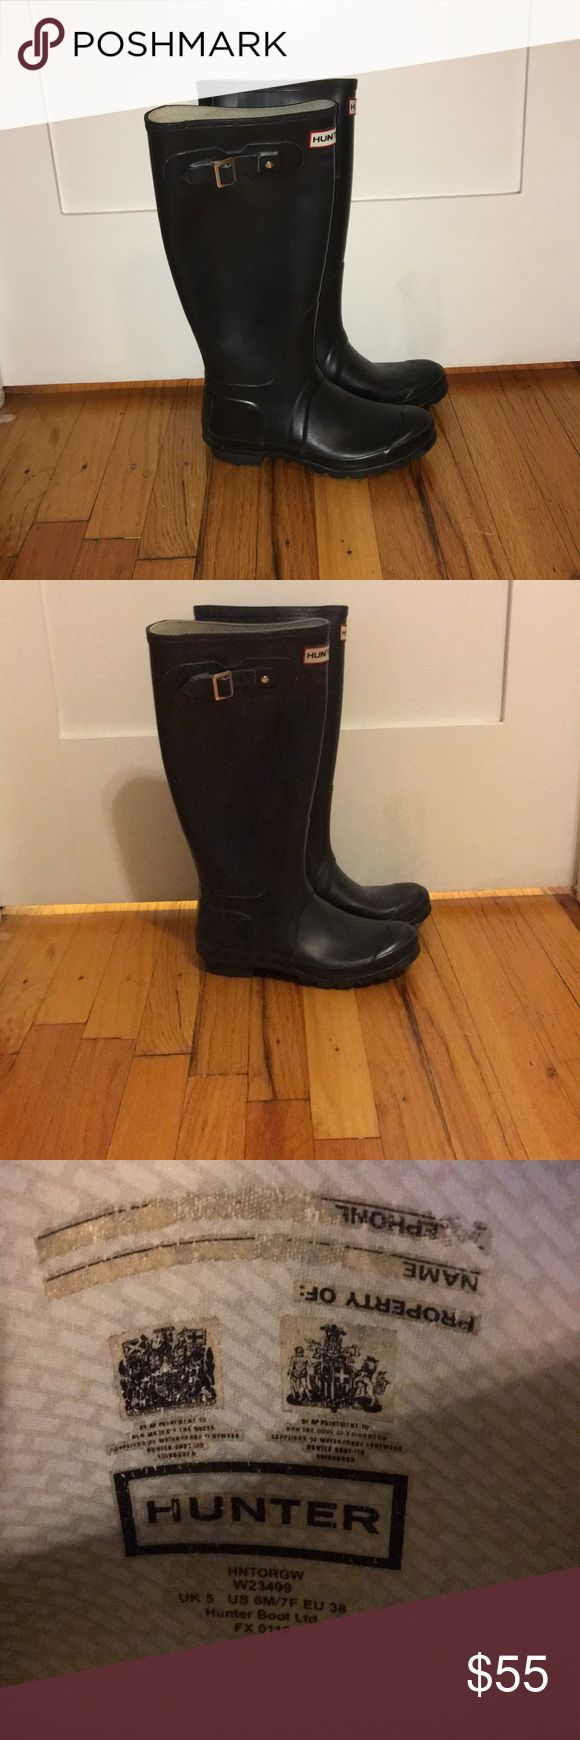 Tall black Hunter boots Tall black hunter rain boots Matte black  Right boot buckle broke once but was fixed by a shoe maker with small piece of leather as shown in pic. Not noticeable Great condition Hunter Boots Shoes Winter & Rain Boots